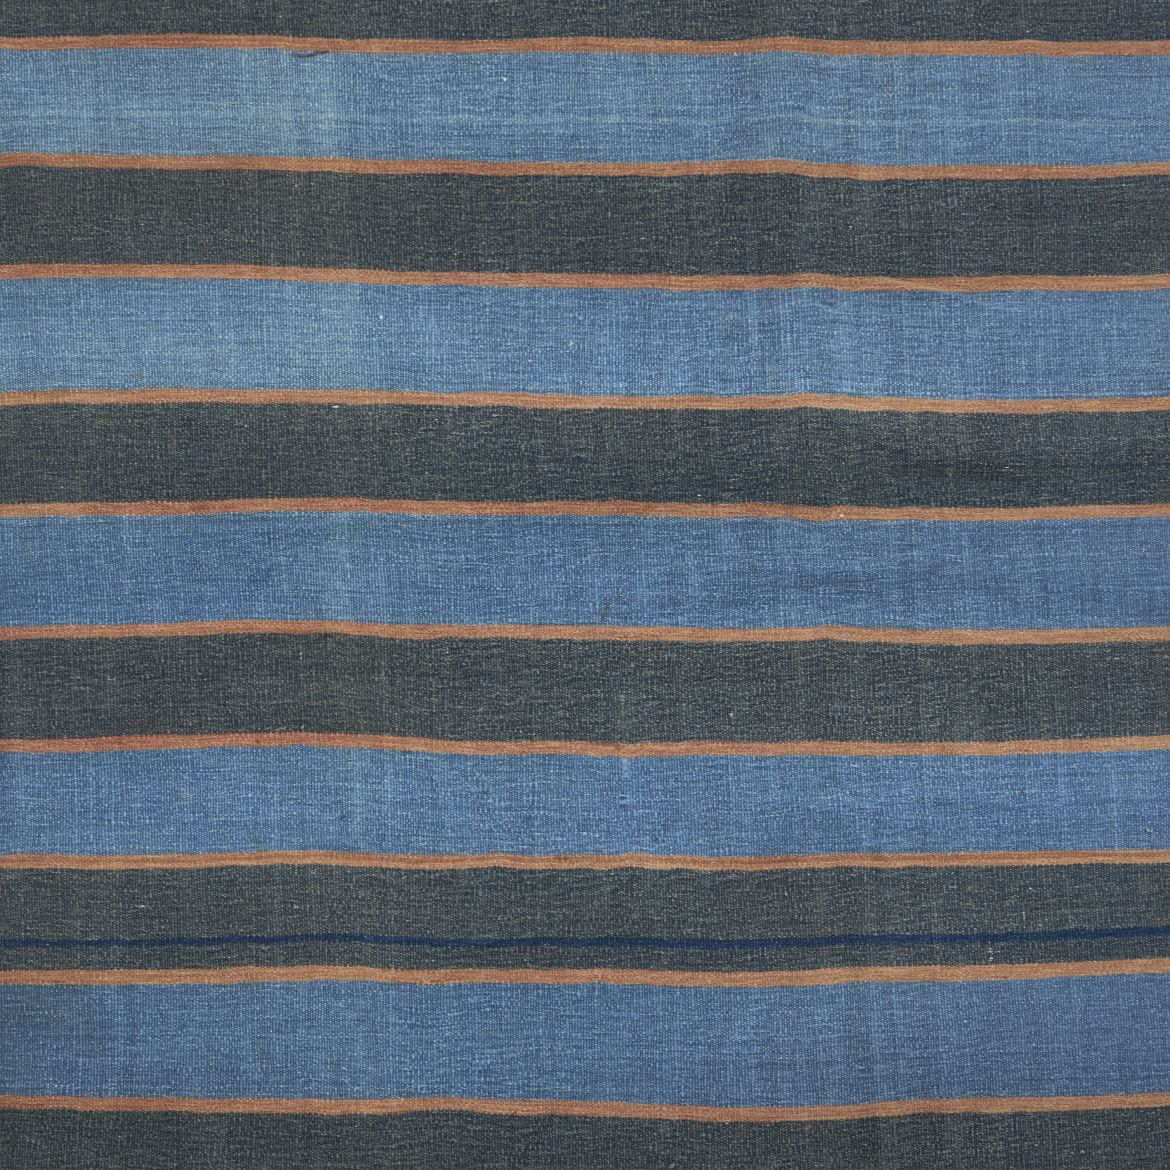 Blue And Caramel Striped Dhurrie